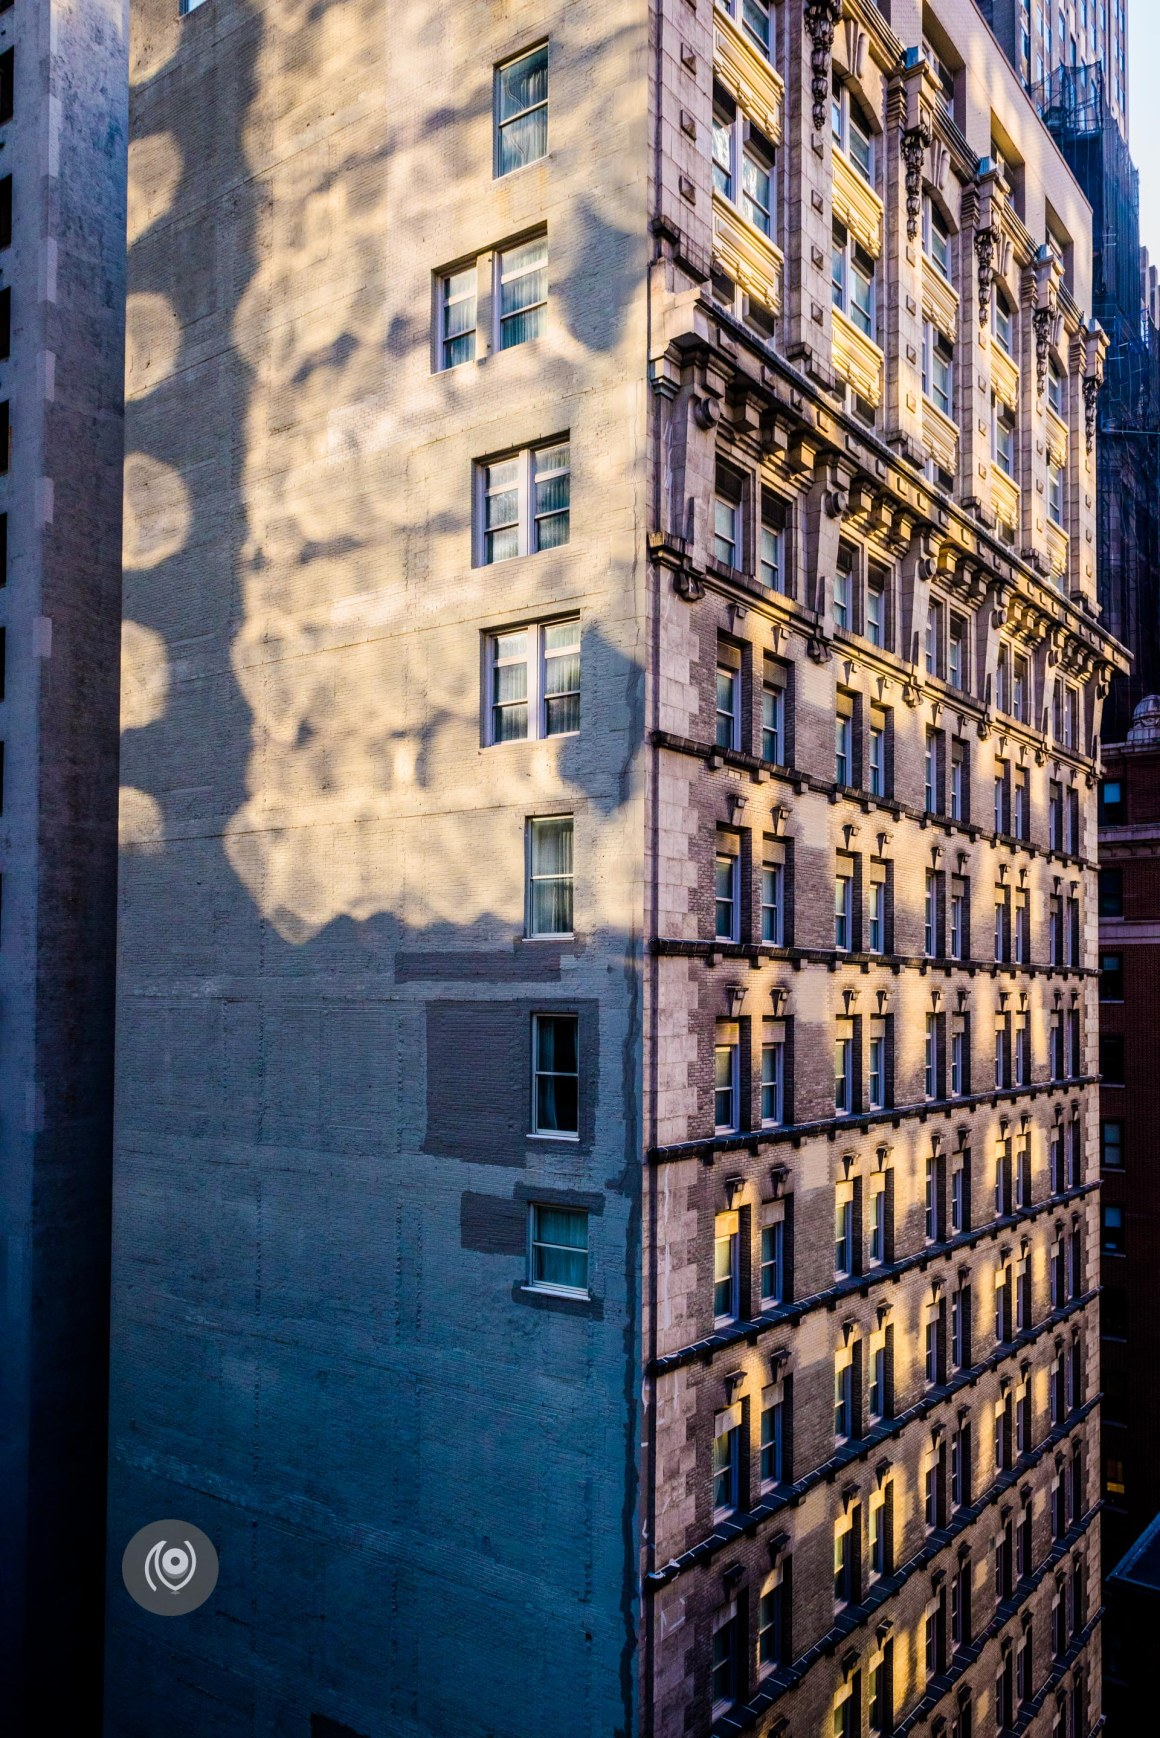 Suzanne's FiDi Apartment, Wall Street #REDHUxAIRBNB, Airbnb, #EyesForNewYork #REDHUxNYC Naina.co Luxury & Lifestyle, Photographer Storyteller, Blogger